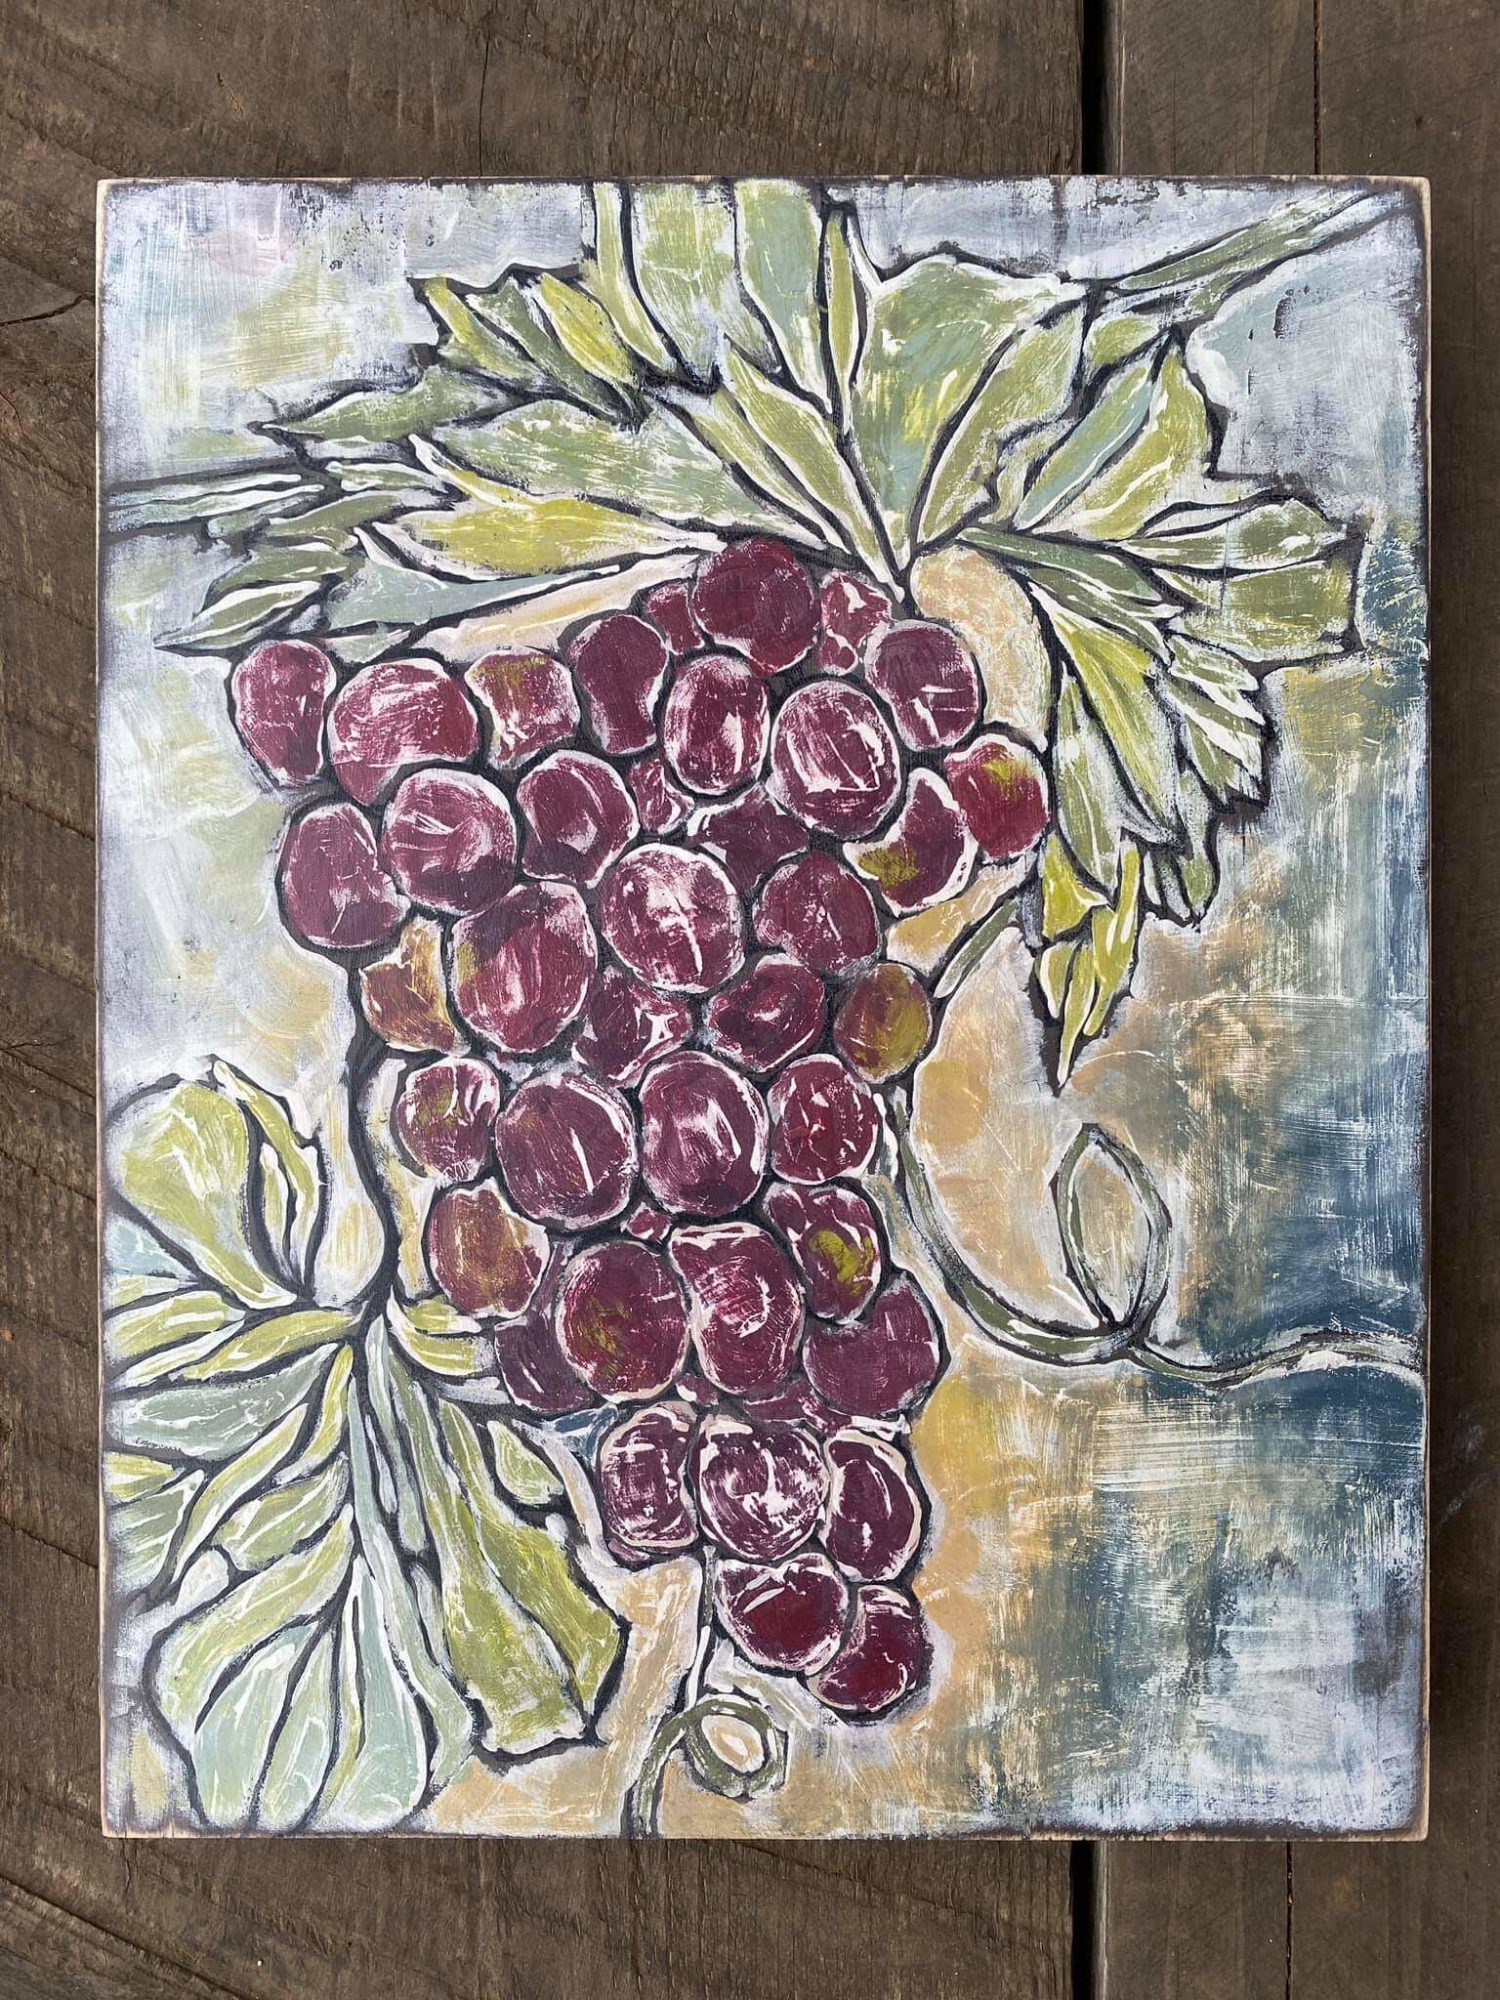 Have fun adding texture to your projects with these fun Iron Orchid Designs - Grapes | www.raggedy-bits.com | #raggedybits #IOD #DecorStamps #grapes #texture